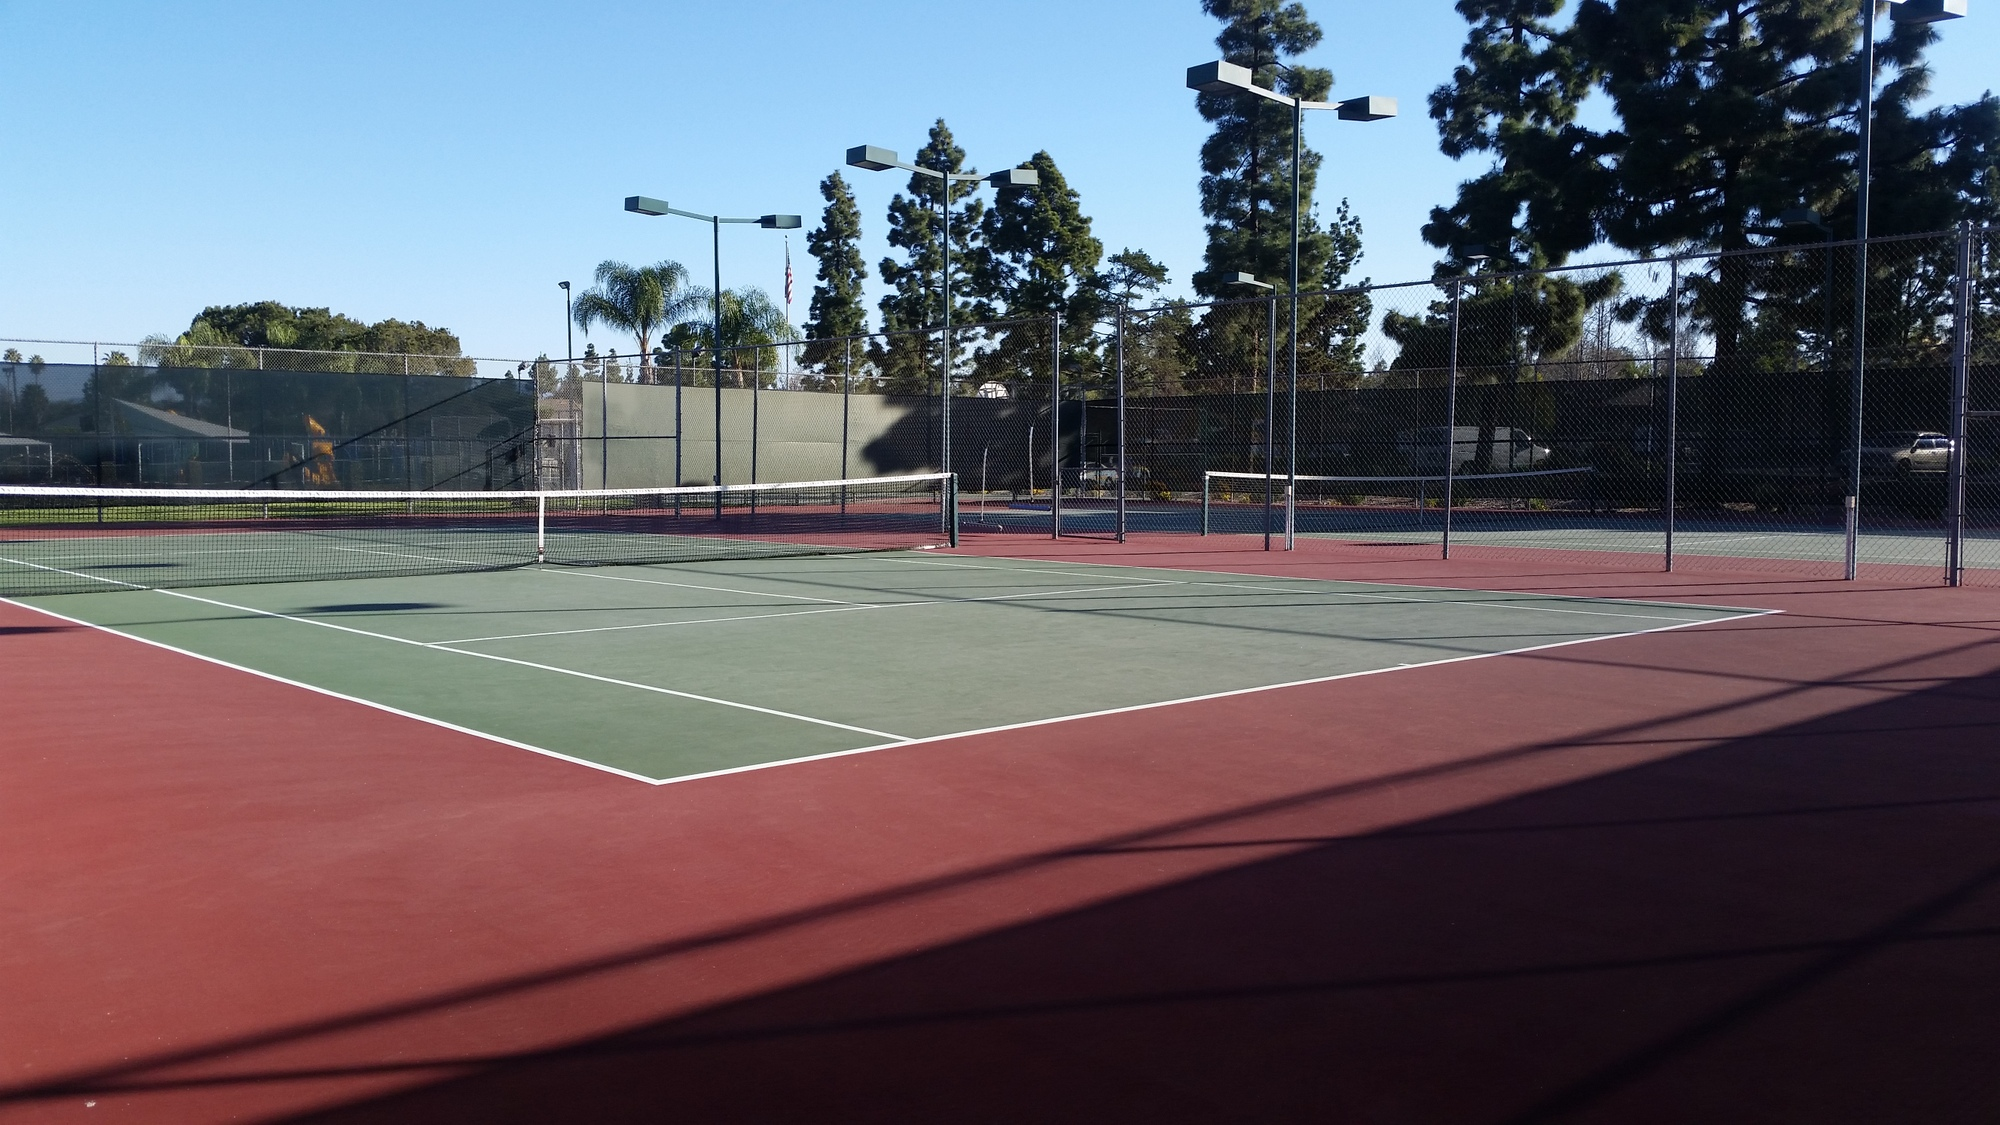 RAY SMITH'S Tennis Camp